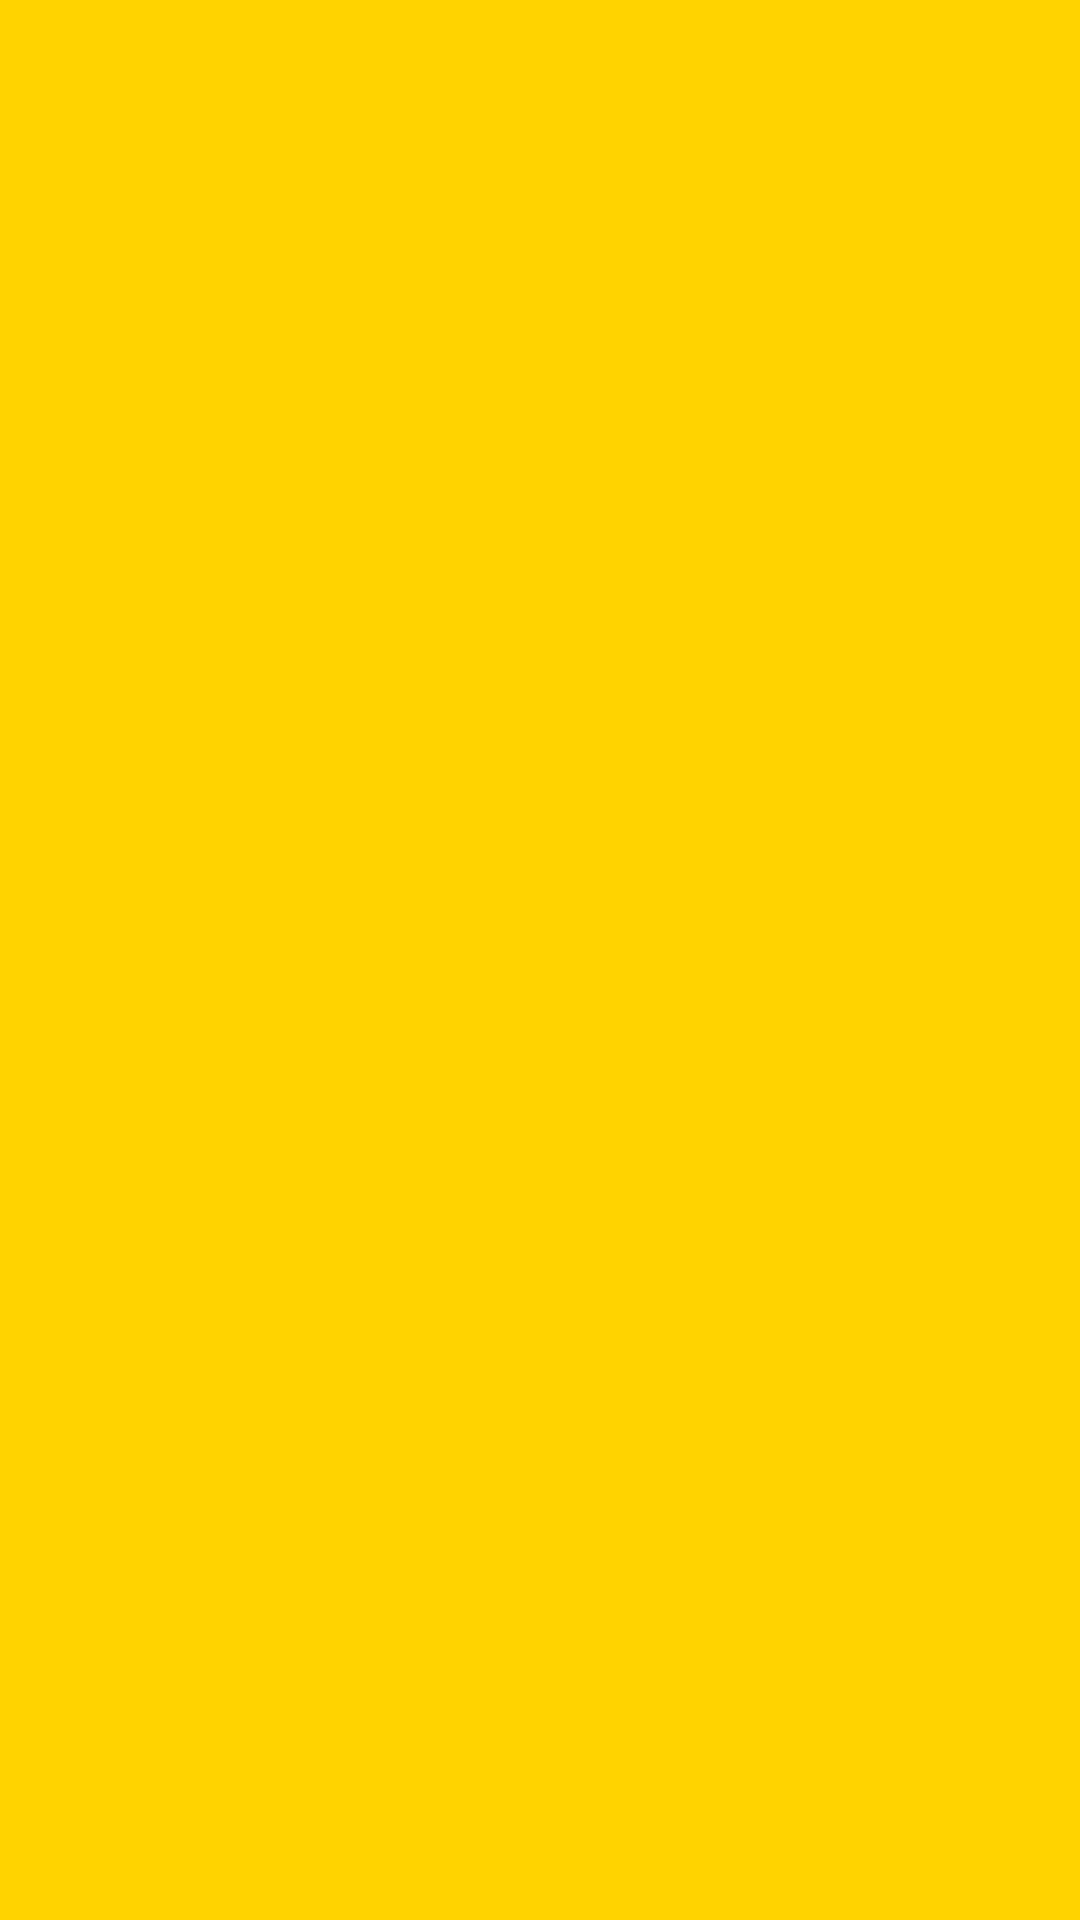 1080x1920 Yellow NCS Solid Color Background